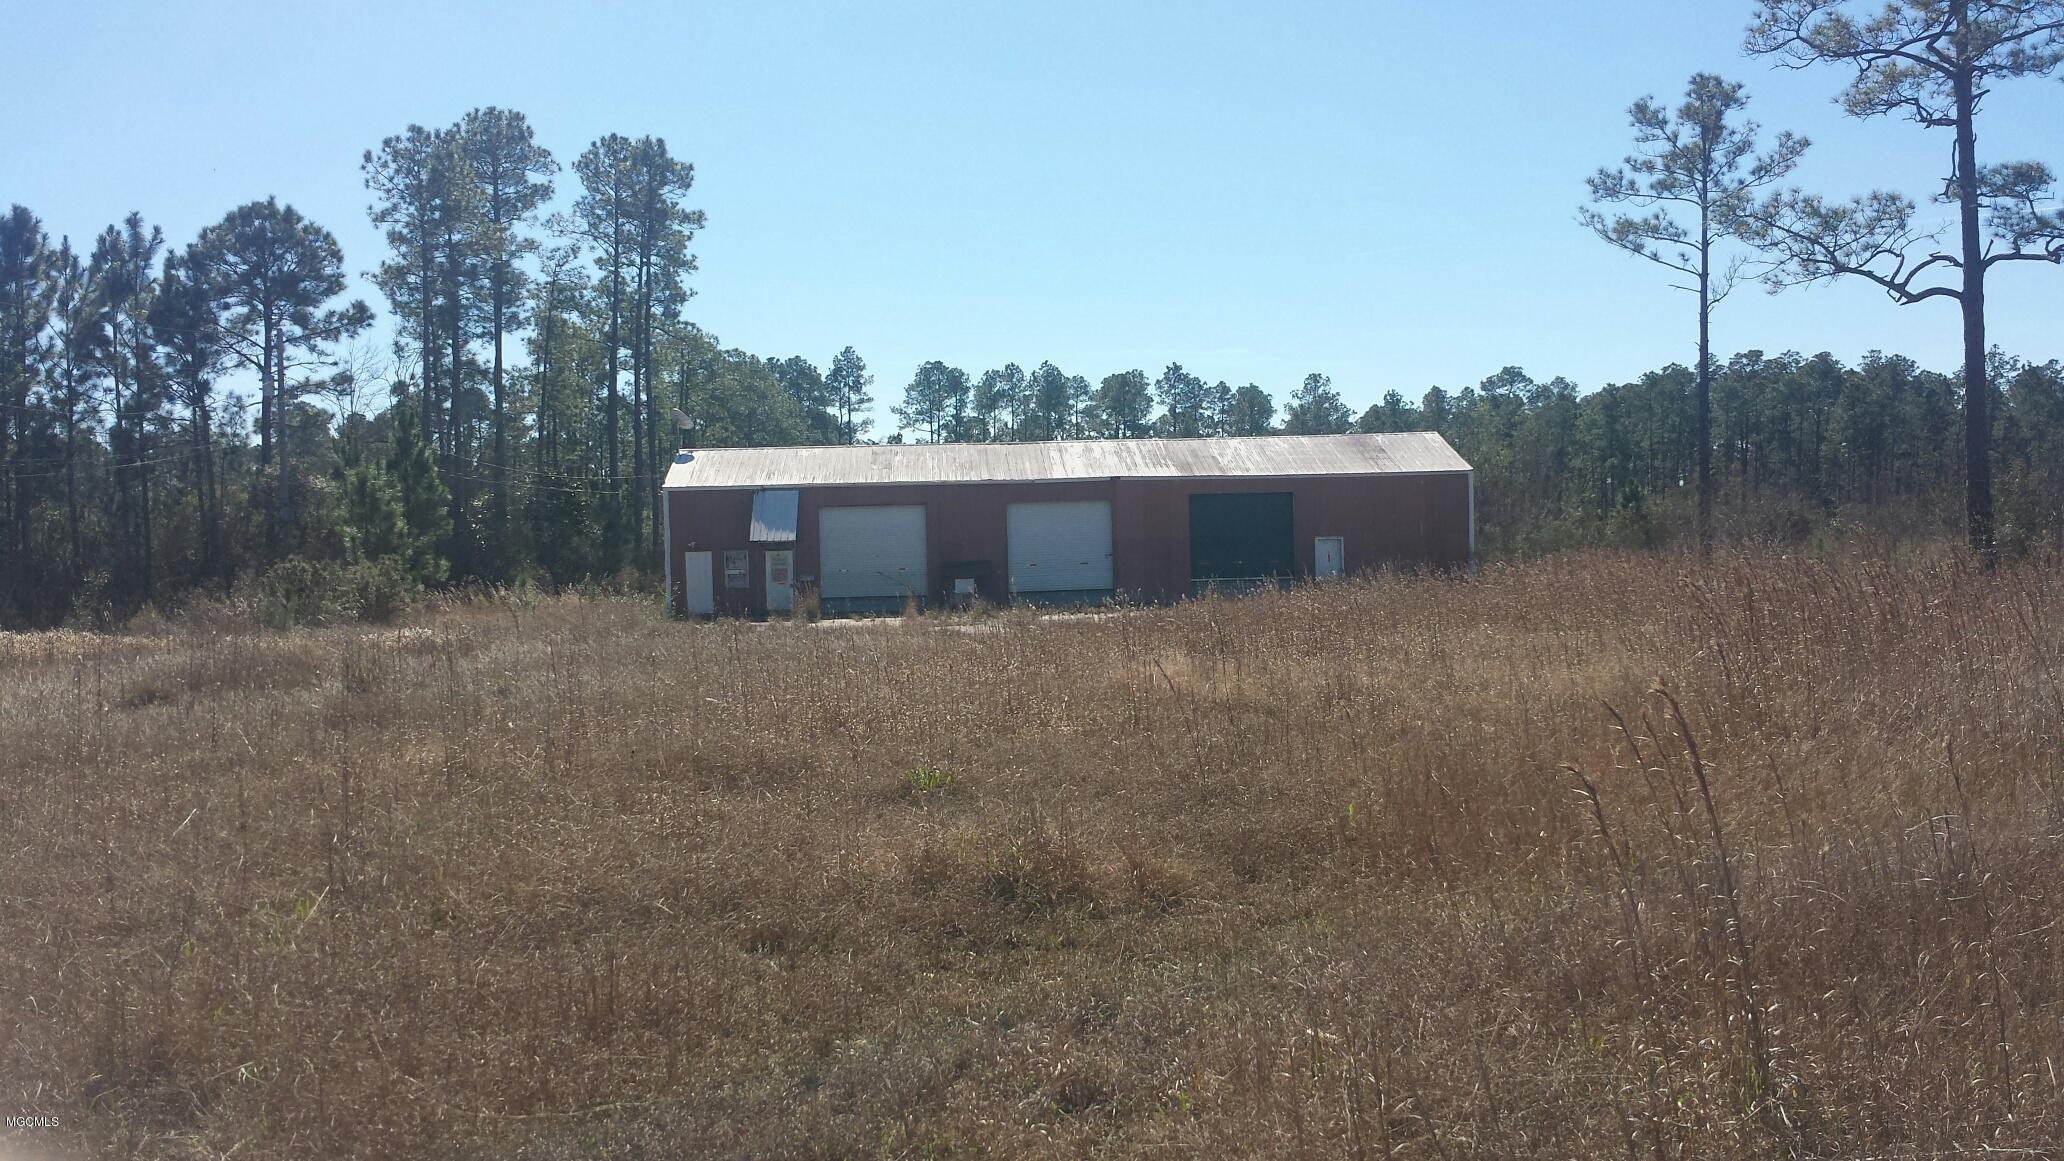 8447 Highway 90 Bay St. Louis MS 39520